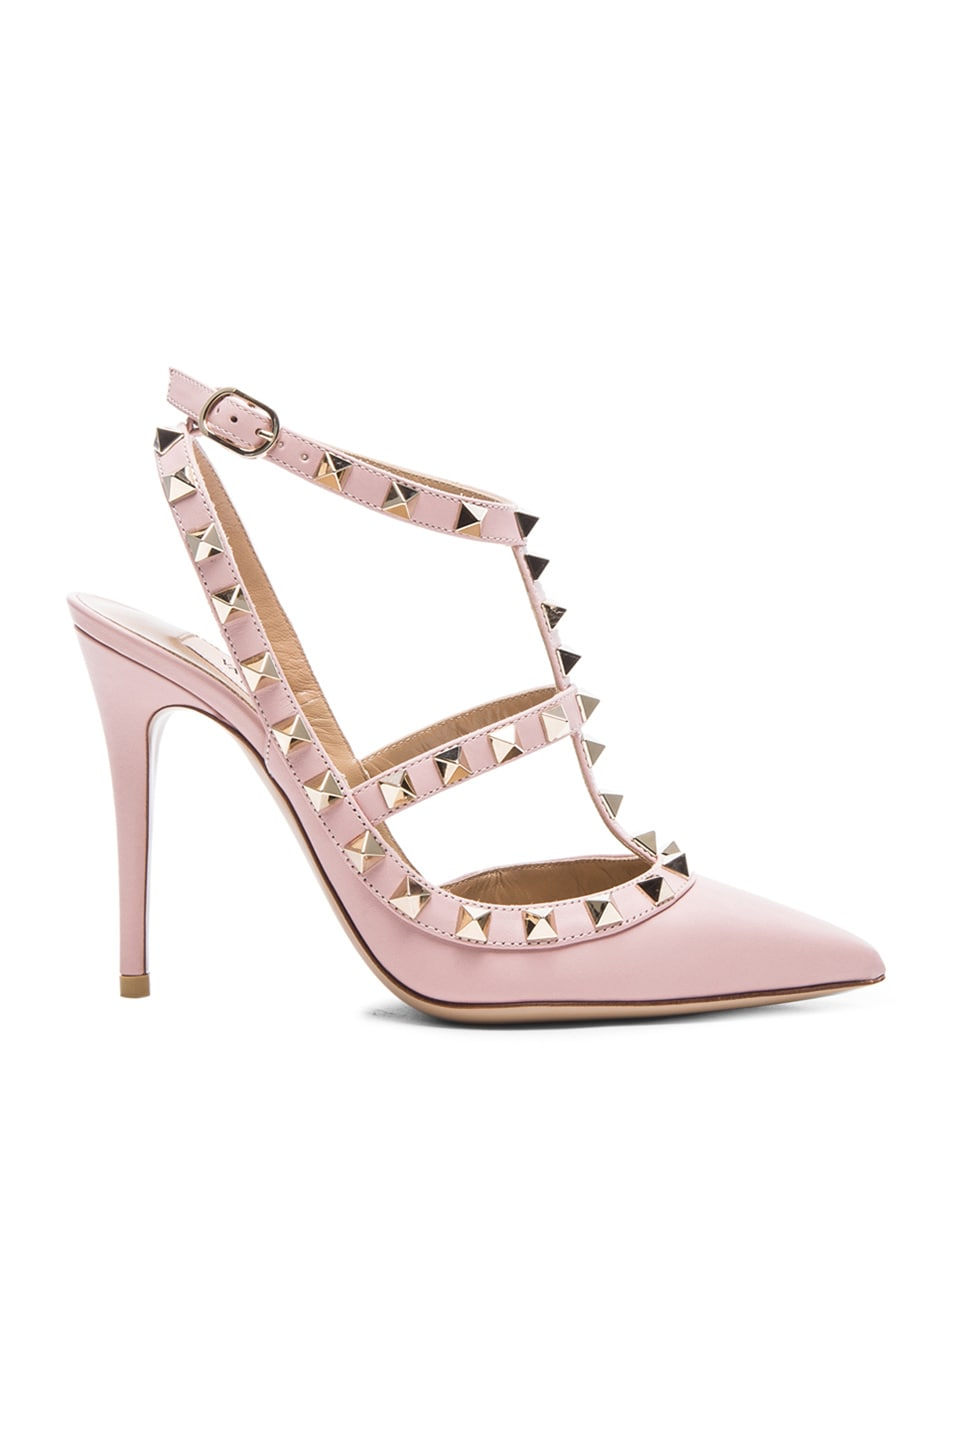 d01ed3175b2a97 Image 1 of Valentino Rockstud Leather Slingbacks T.100 in Water Rose